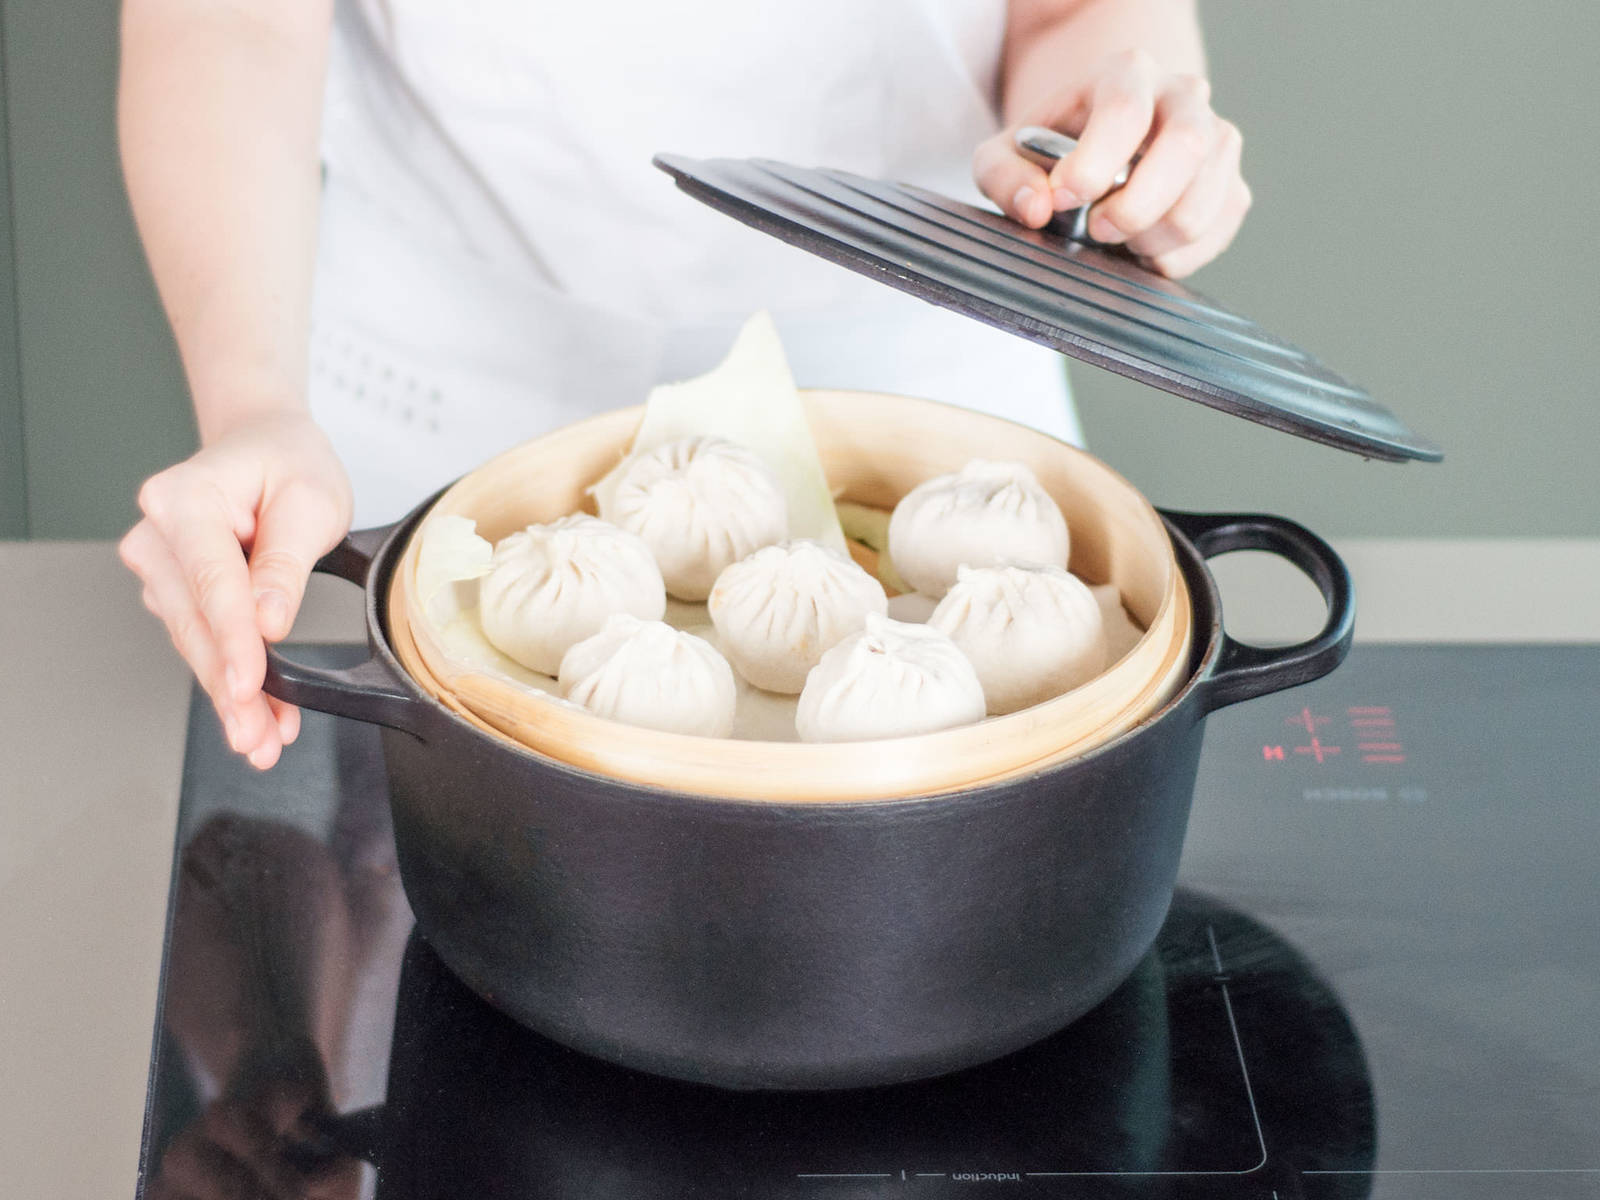 Transfer buns to a steam basket set over boiling water and steam for approx. 15 min.  Allow to cool and enjoy!